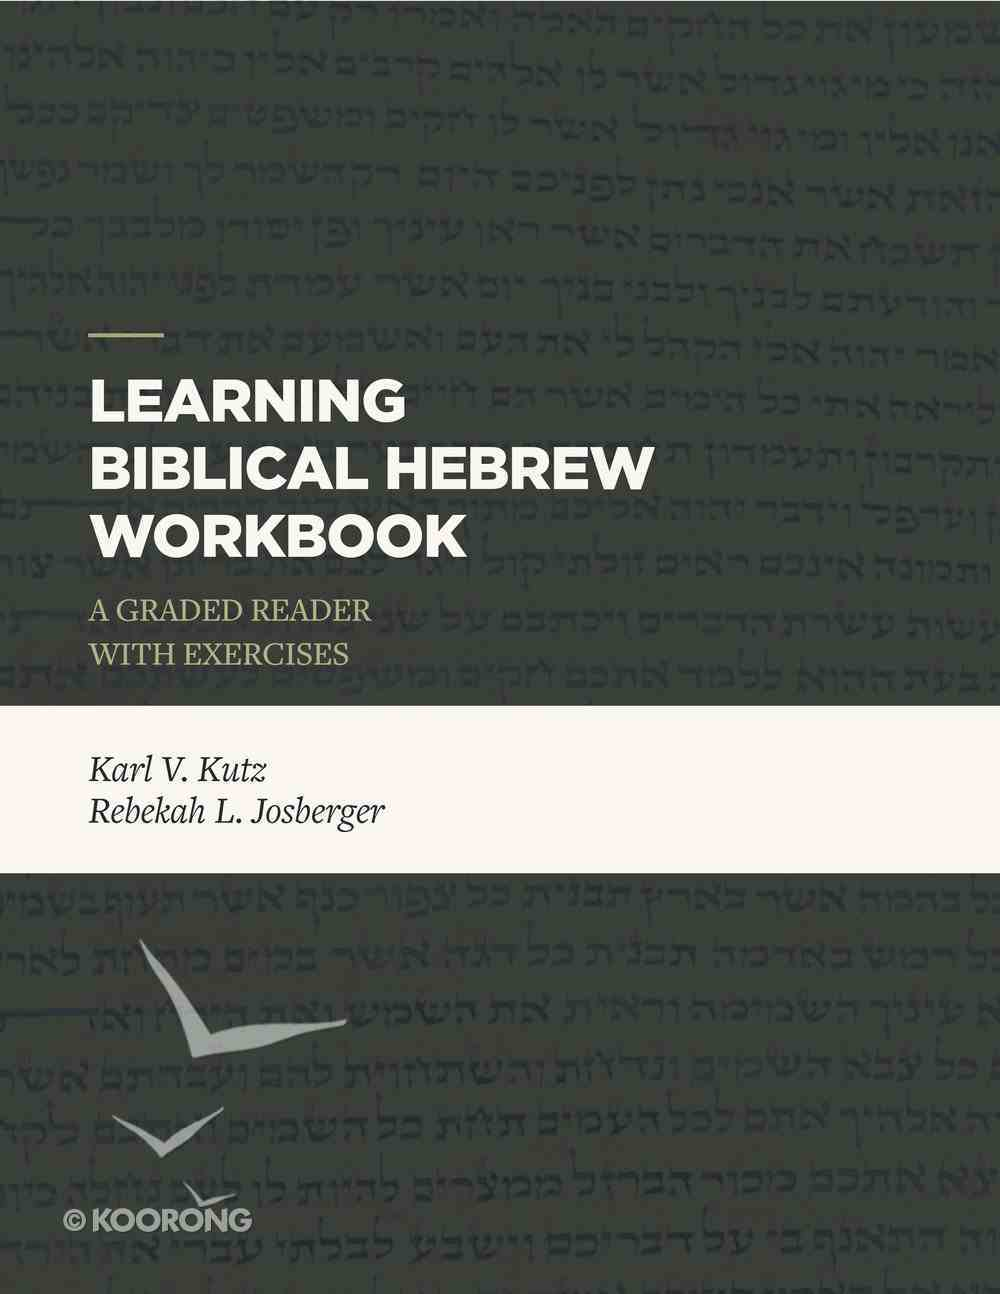 Learning Biblical Hebrew Workbook: A Graded Reader With Exercises Paperback